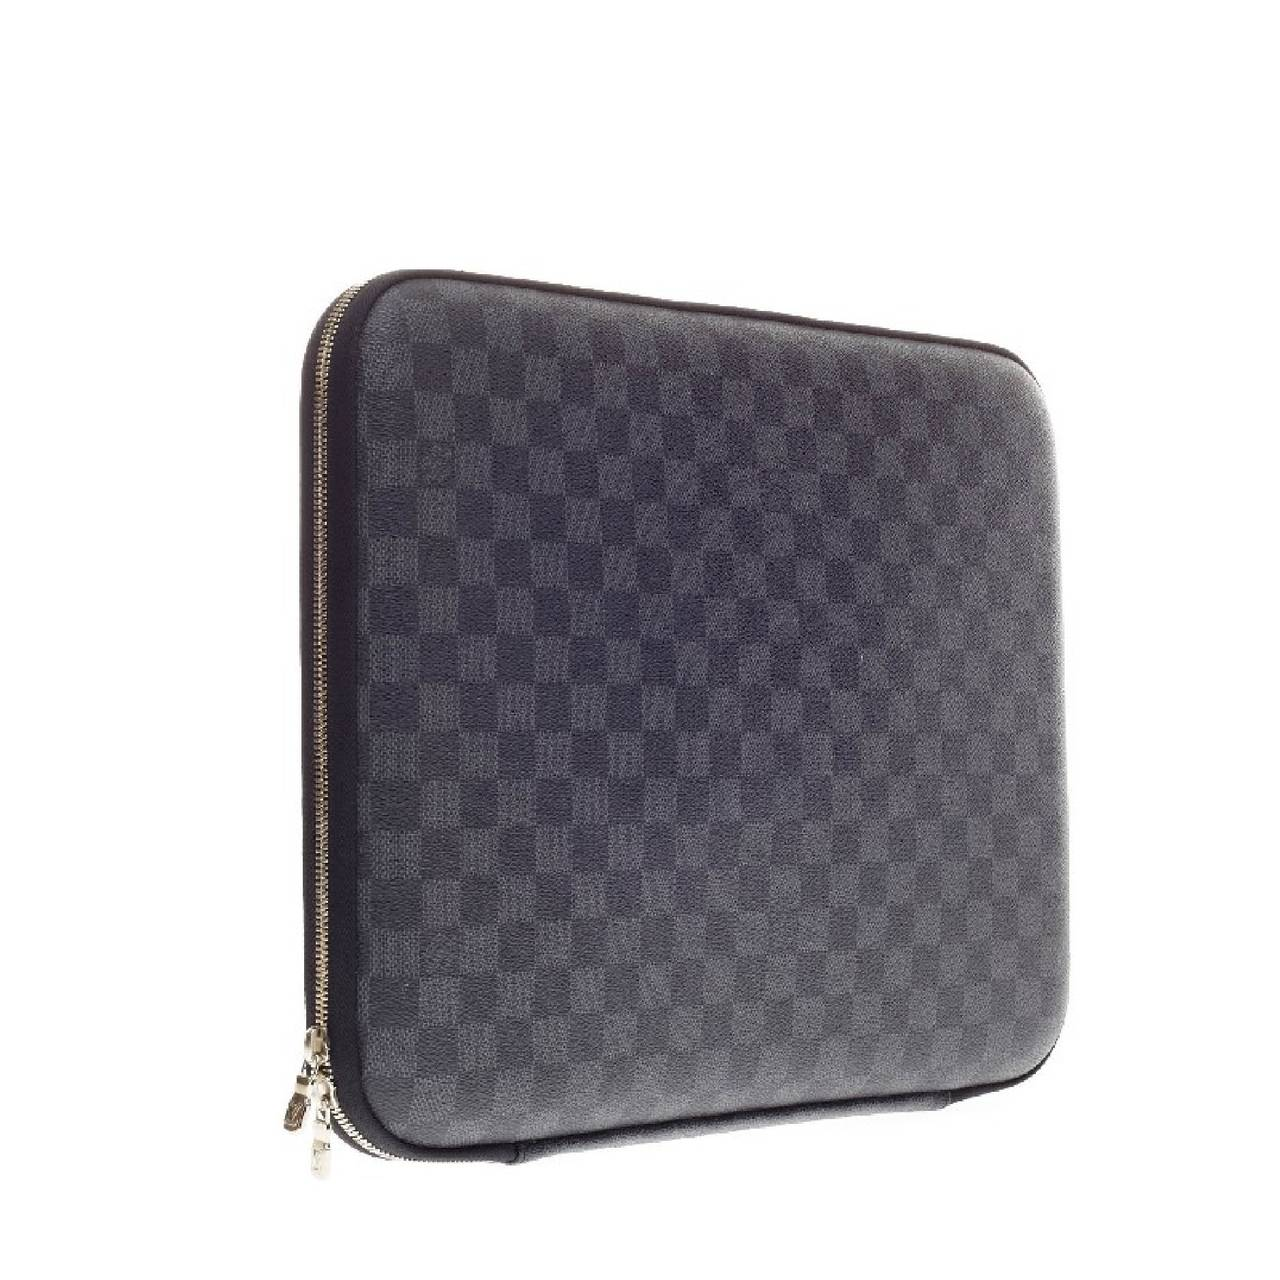 Louis Vuitton Laptop Sleeve Damier Graphite Canvas 15 At